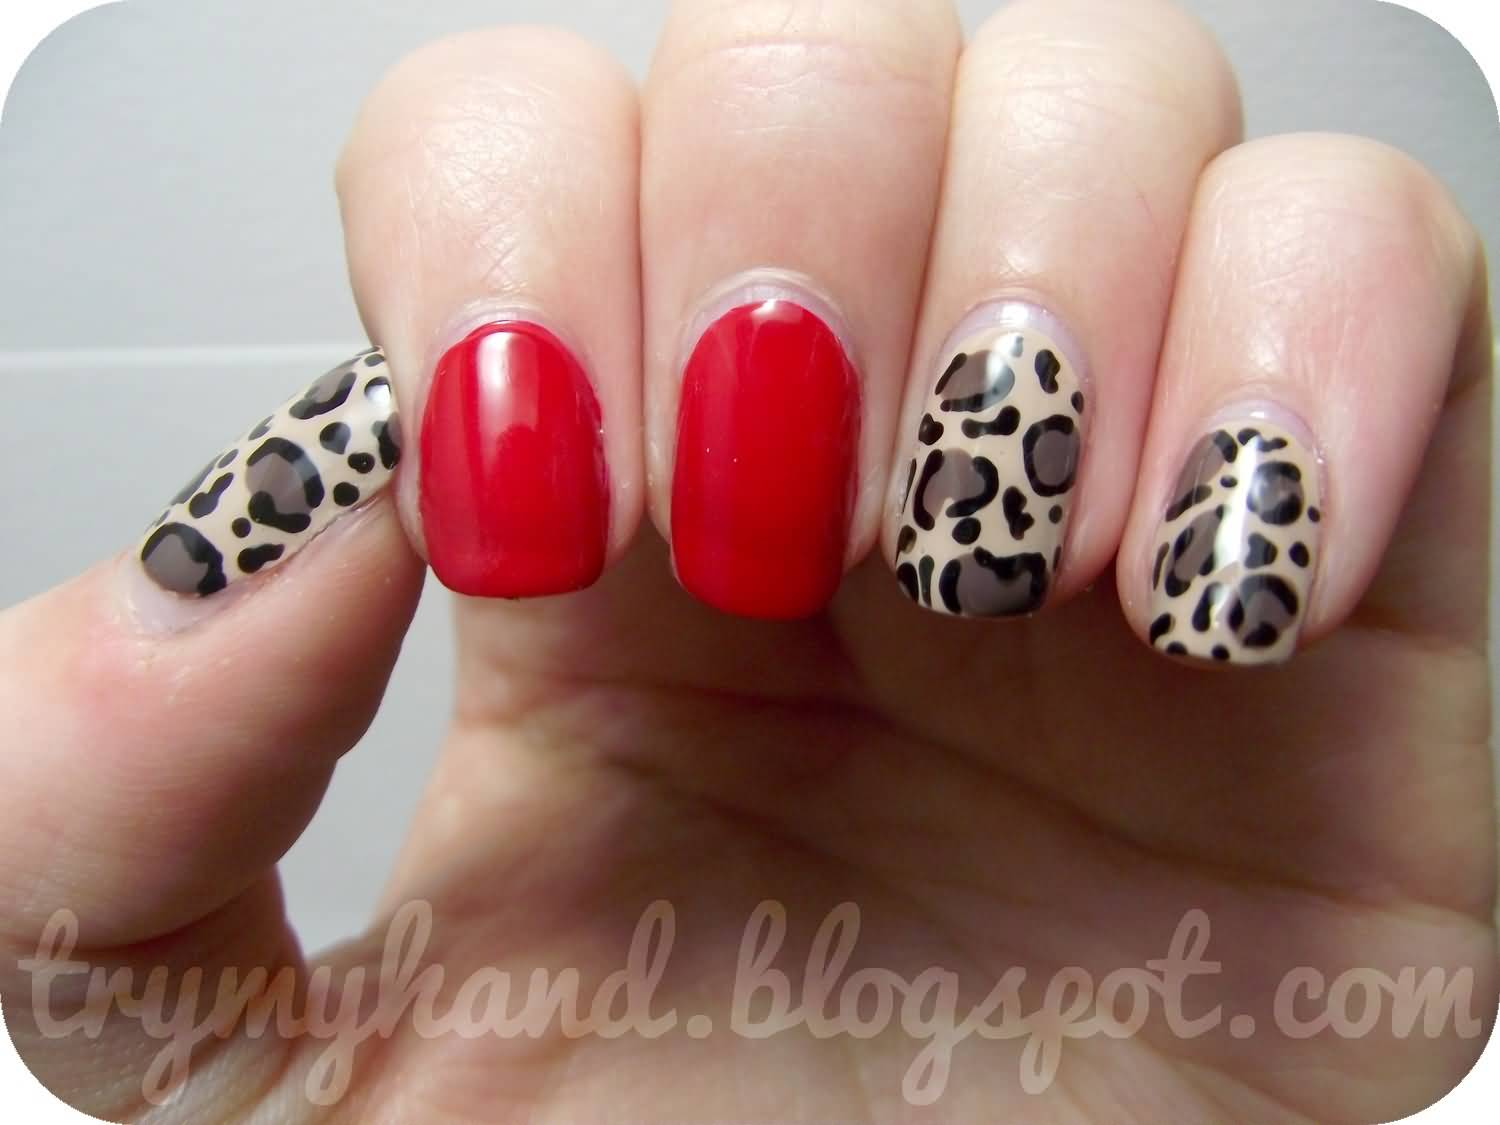 Nail art designs besides red nail art designs on top nail art images - Red Nails With Leopard Print Nail Art Design